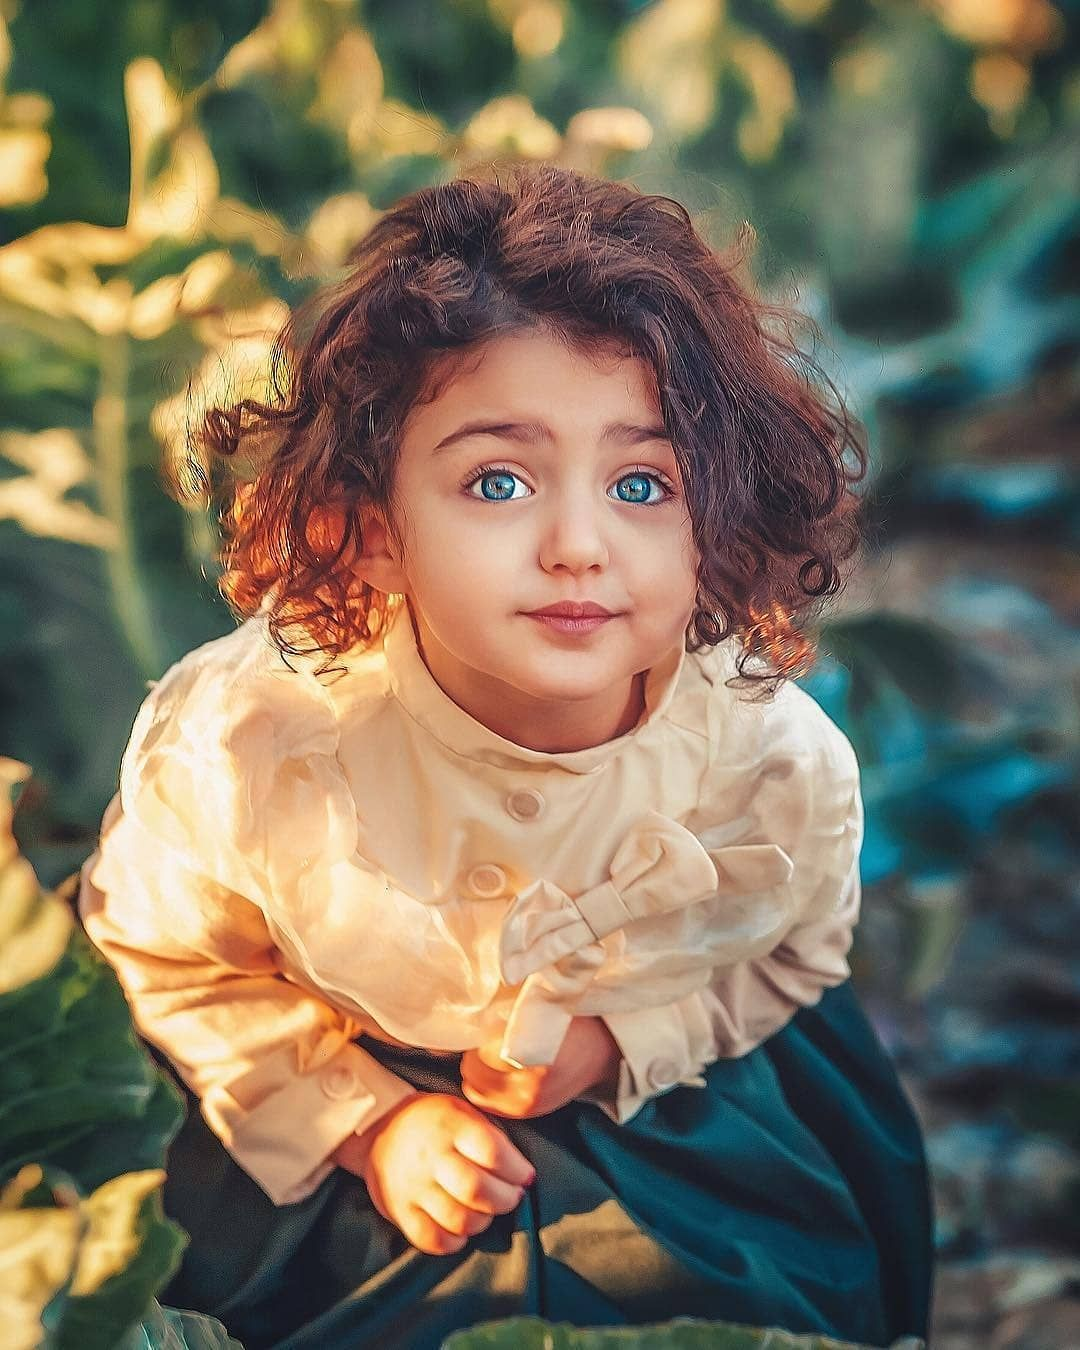 Foto4ever On Instagram Presents F E A T U R E S Picture By Saman Abzz Curat Cute Baby Girl Wallpaper Cute Baby Girl Images Cute Little Baby Girl